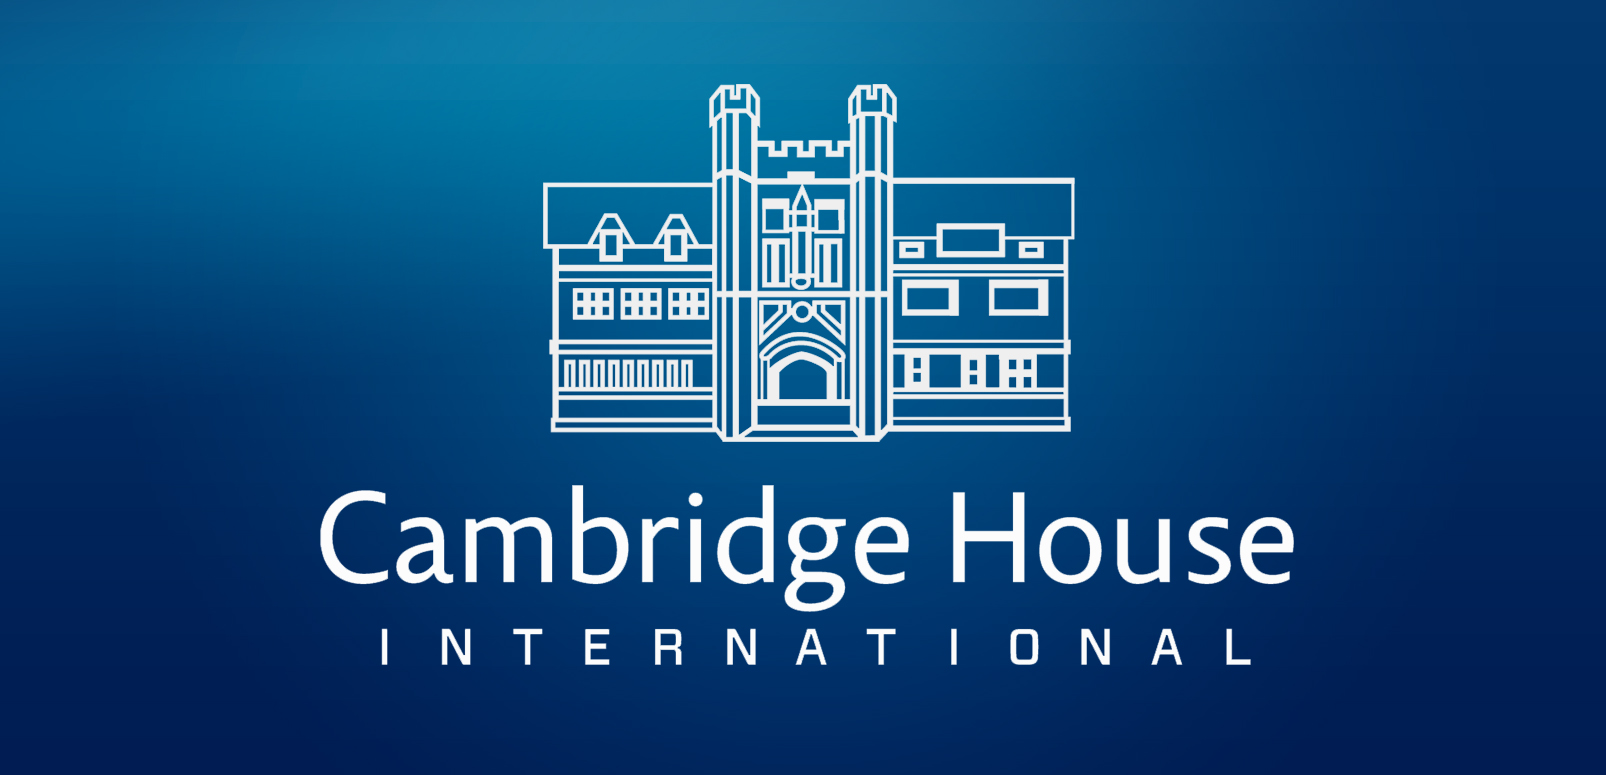 CambridgeHouse-logo-100k NEW TYPE FACE 2